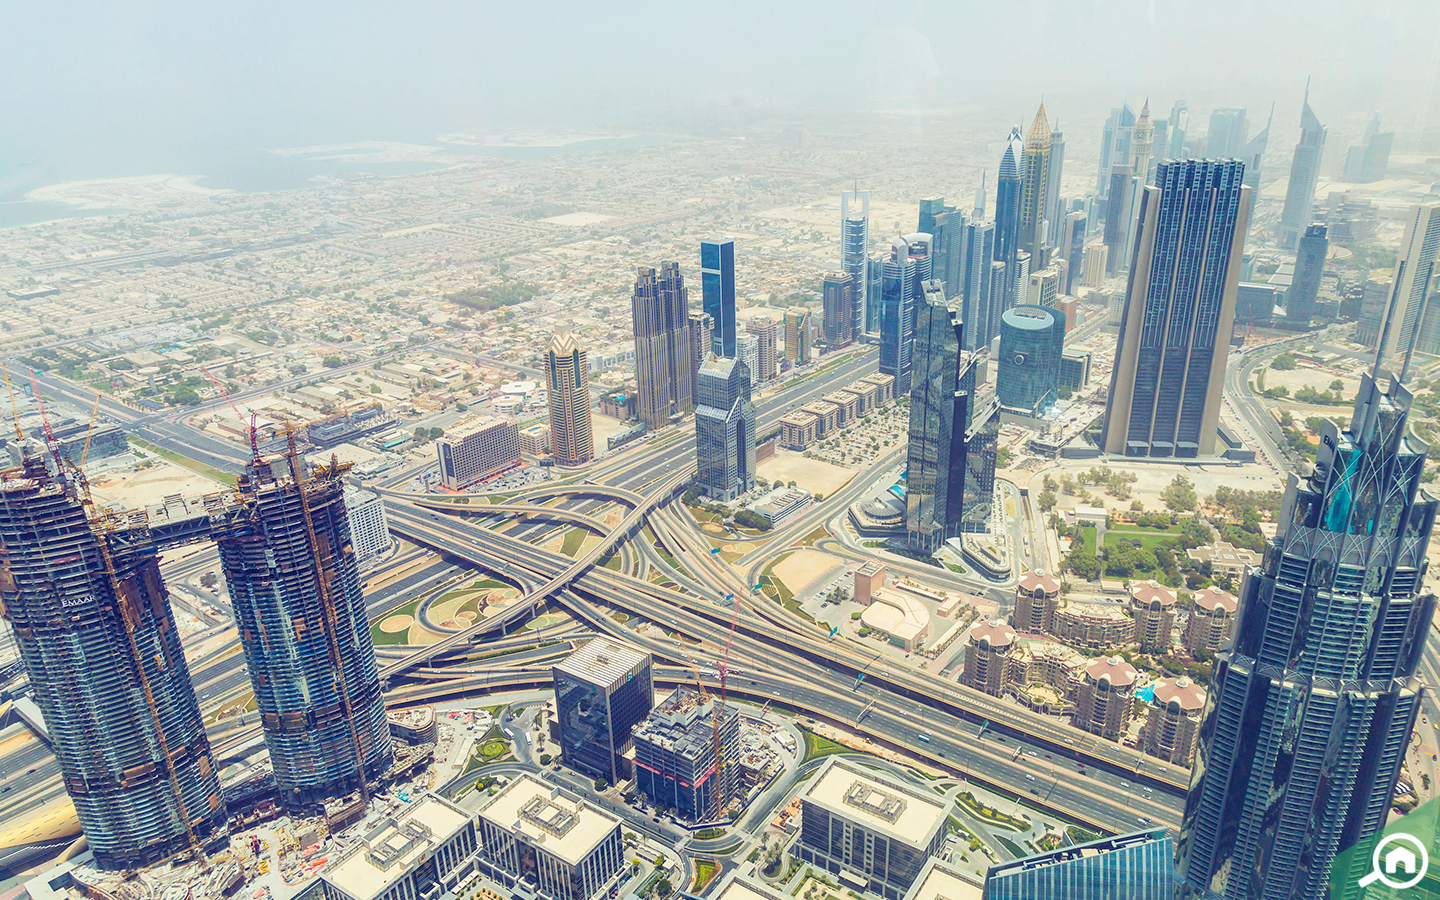 Burj Khalifa is one of the most popular attractions in Downtown Dubai